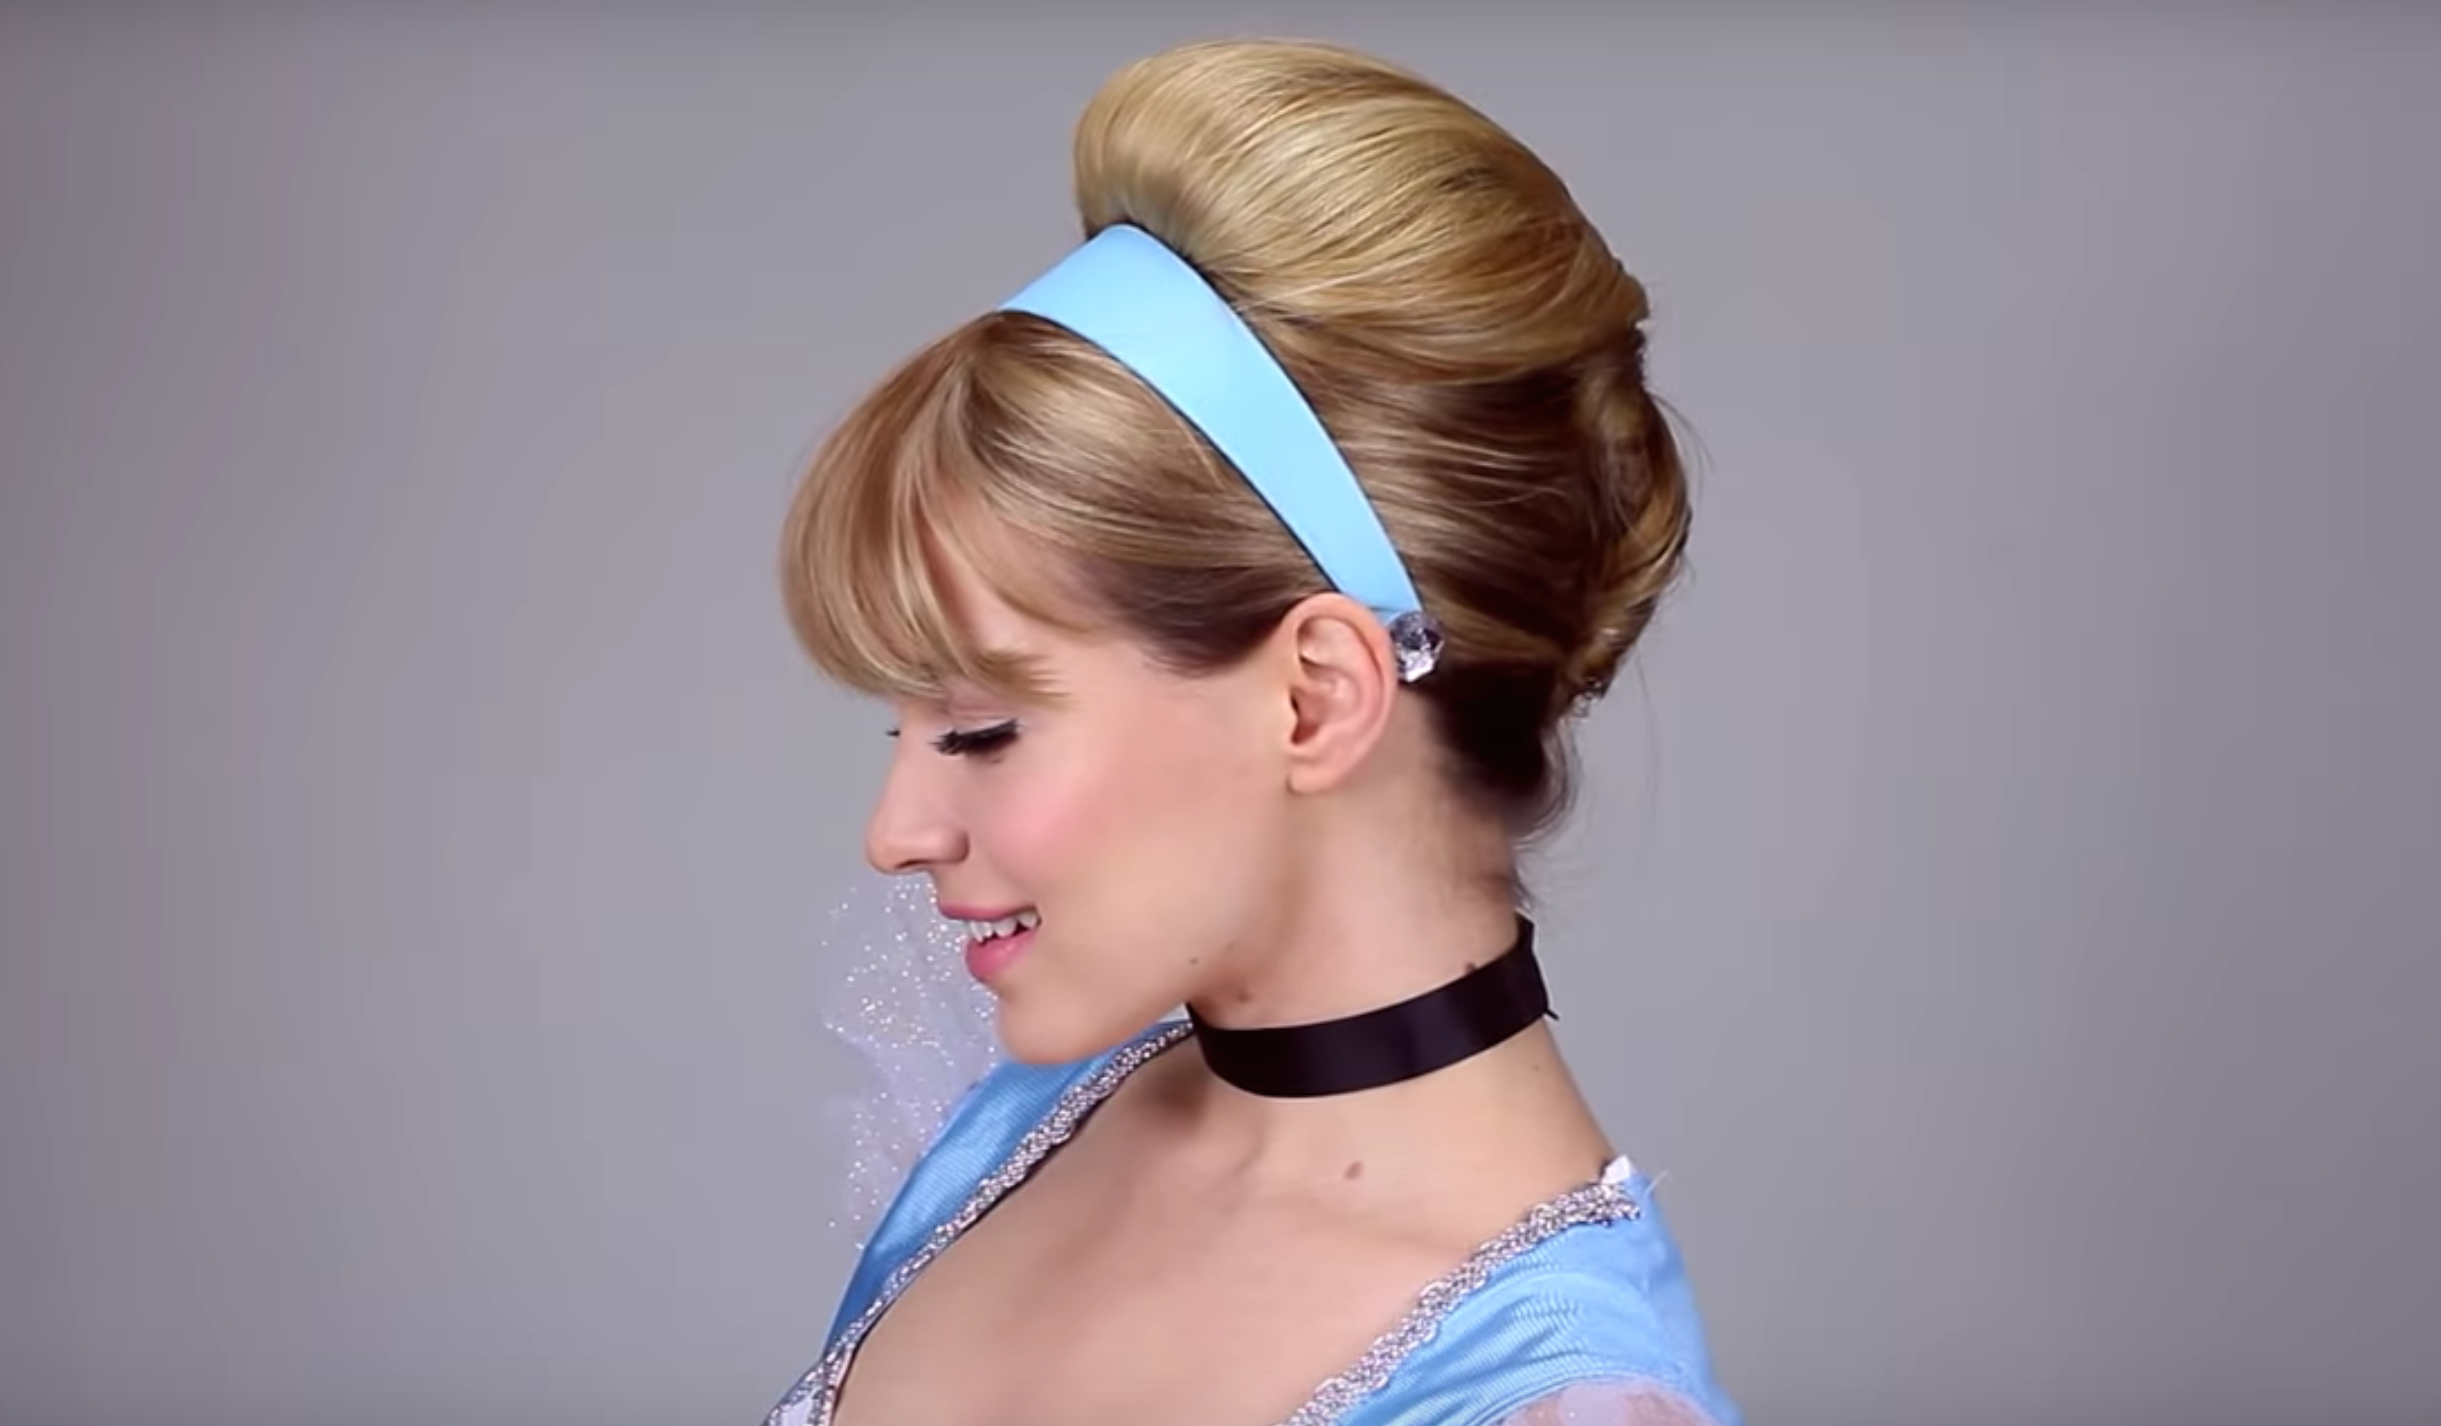 Well Liked Princess Tie Ponytail Hairstyles Inside 11 Disney Princess Hair Tutorials For Halloween That'll Make You (View 18 of 20)